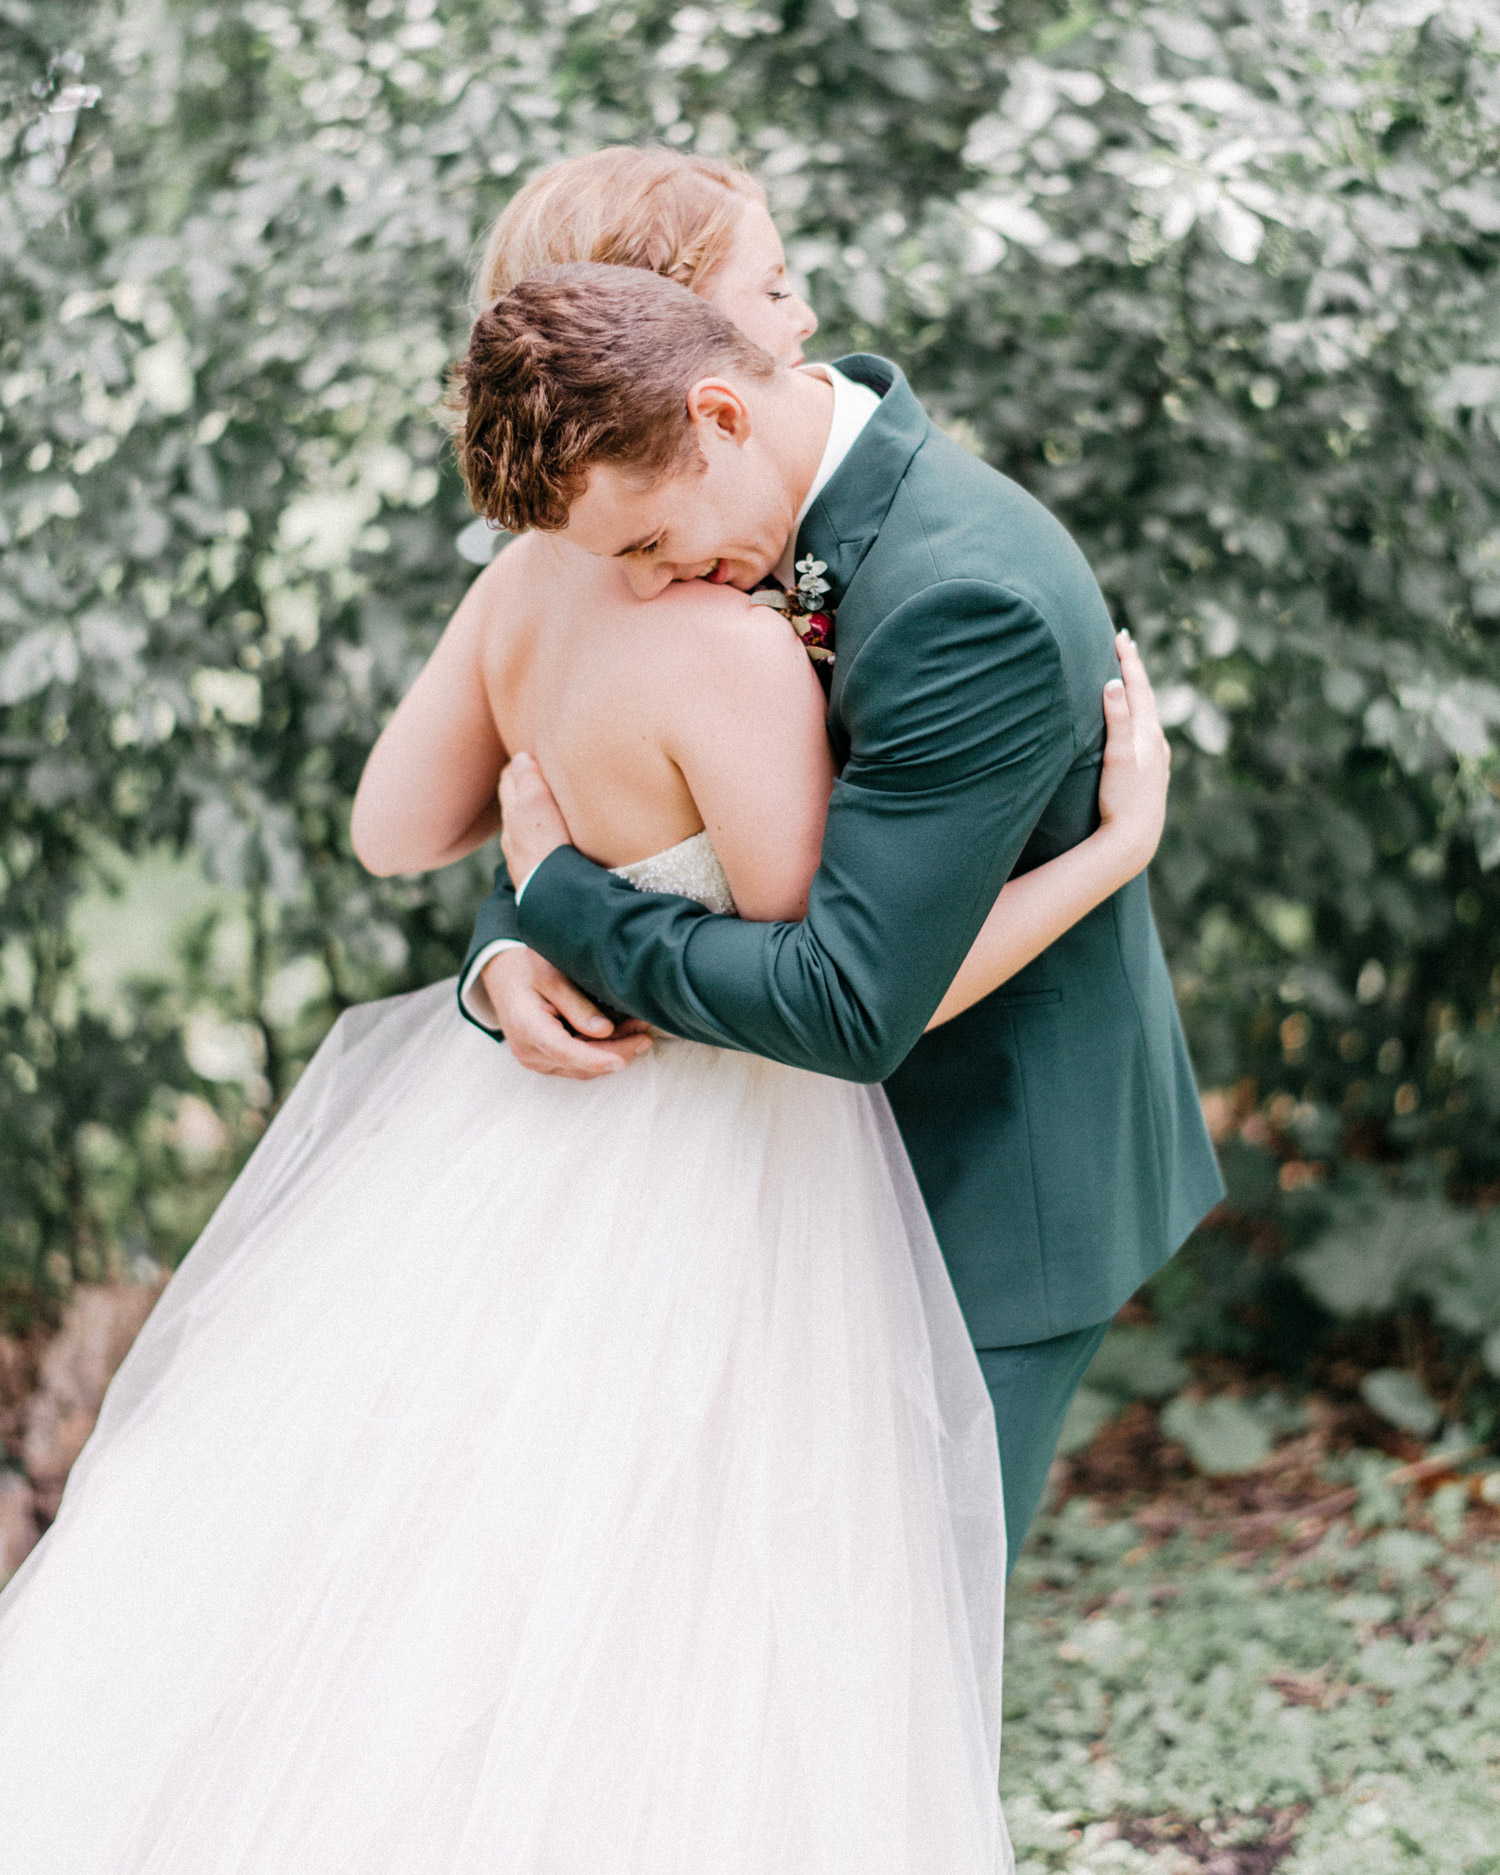 emotional hug between bride and groom during first look by geneoh photography